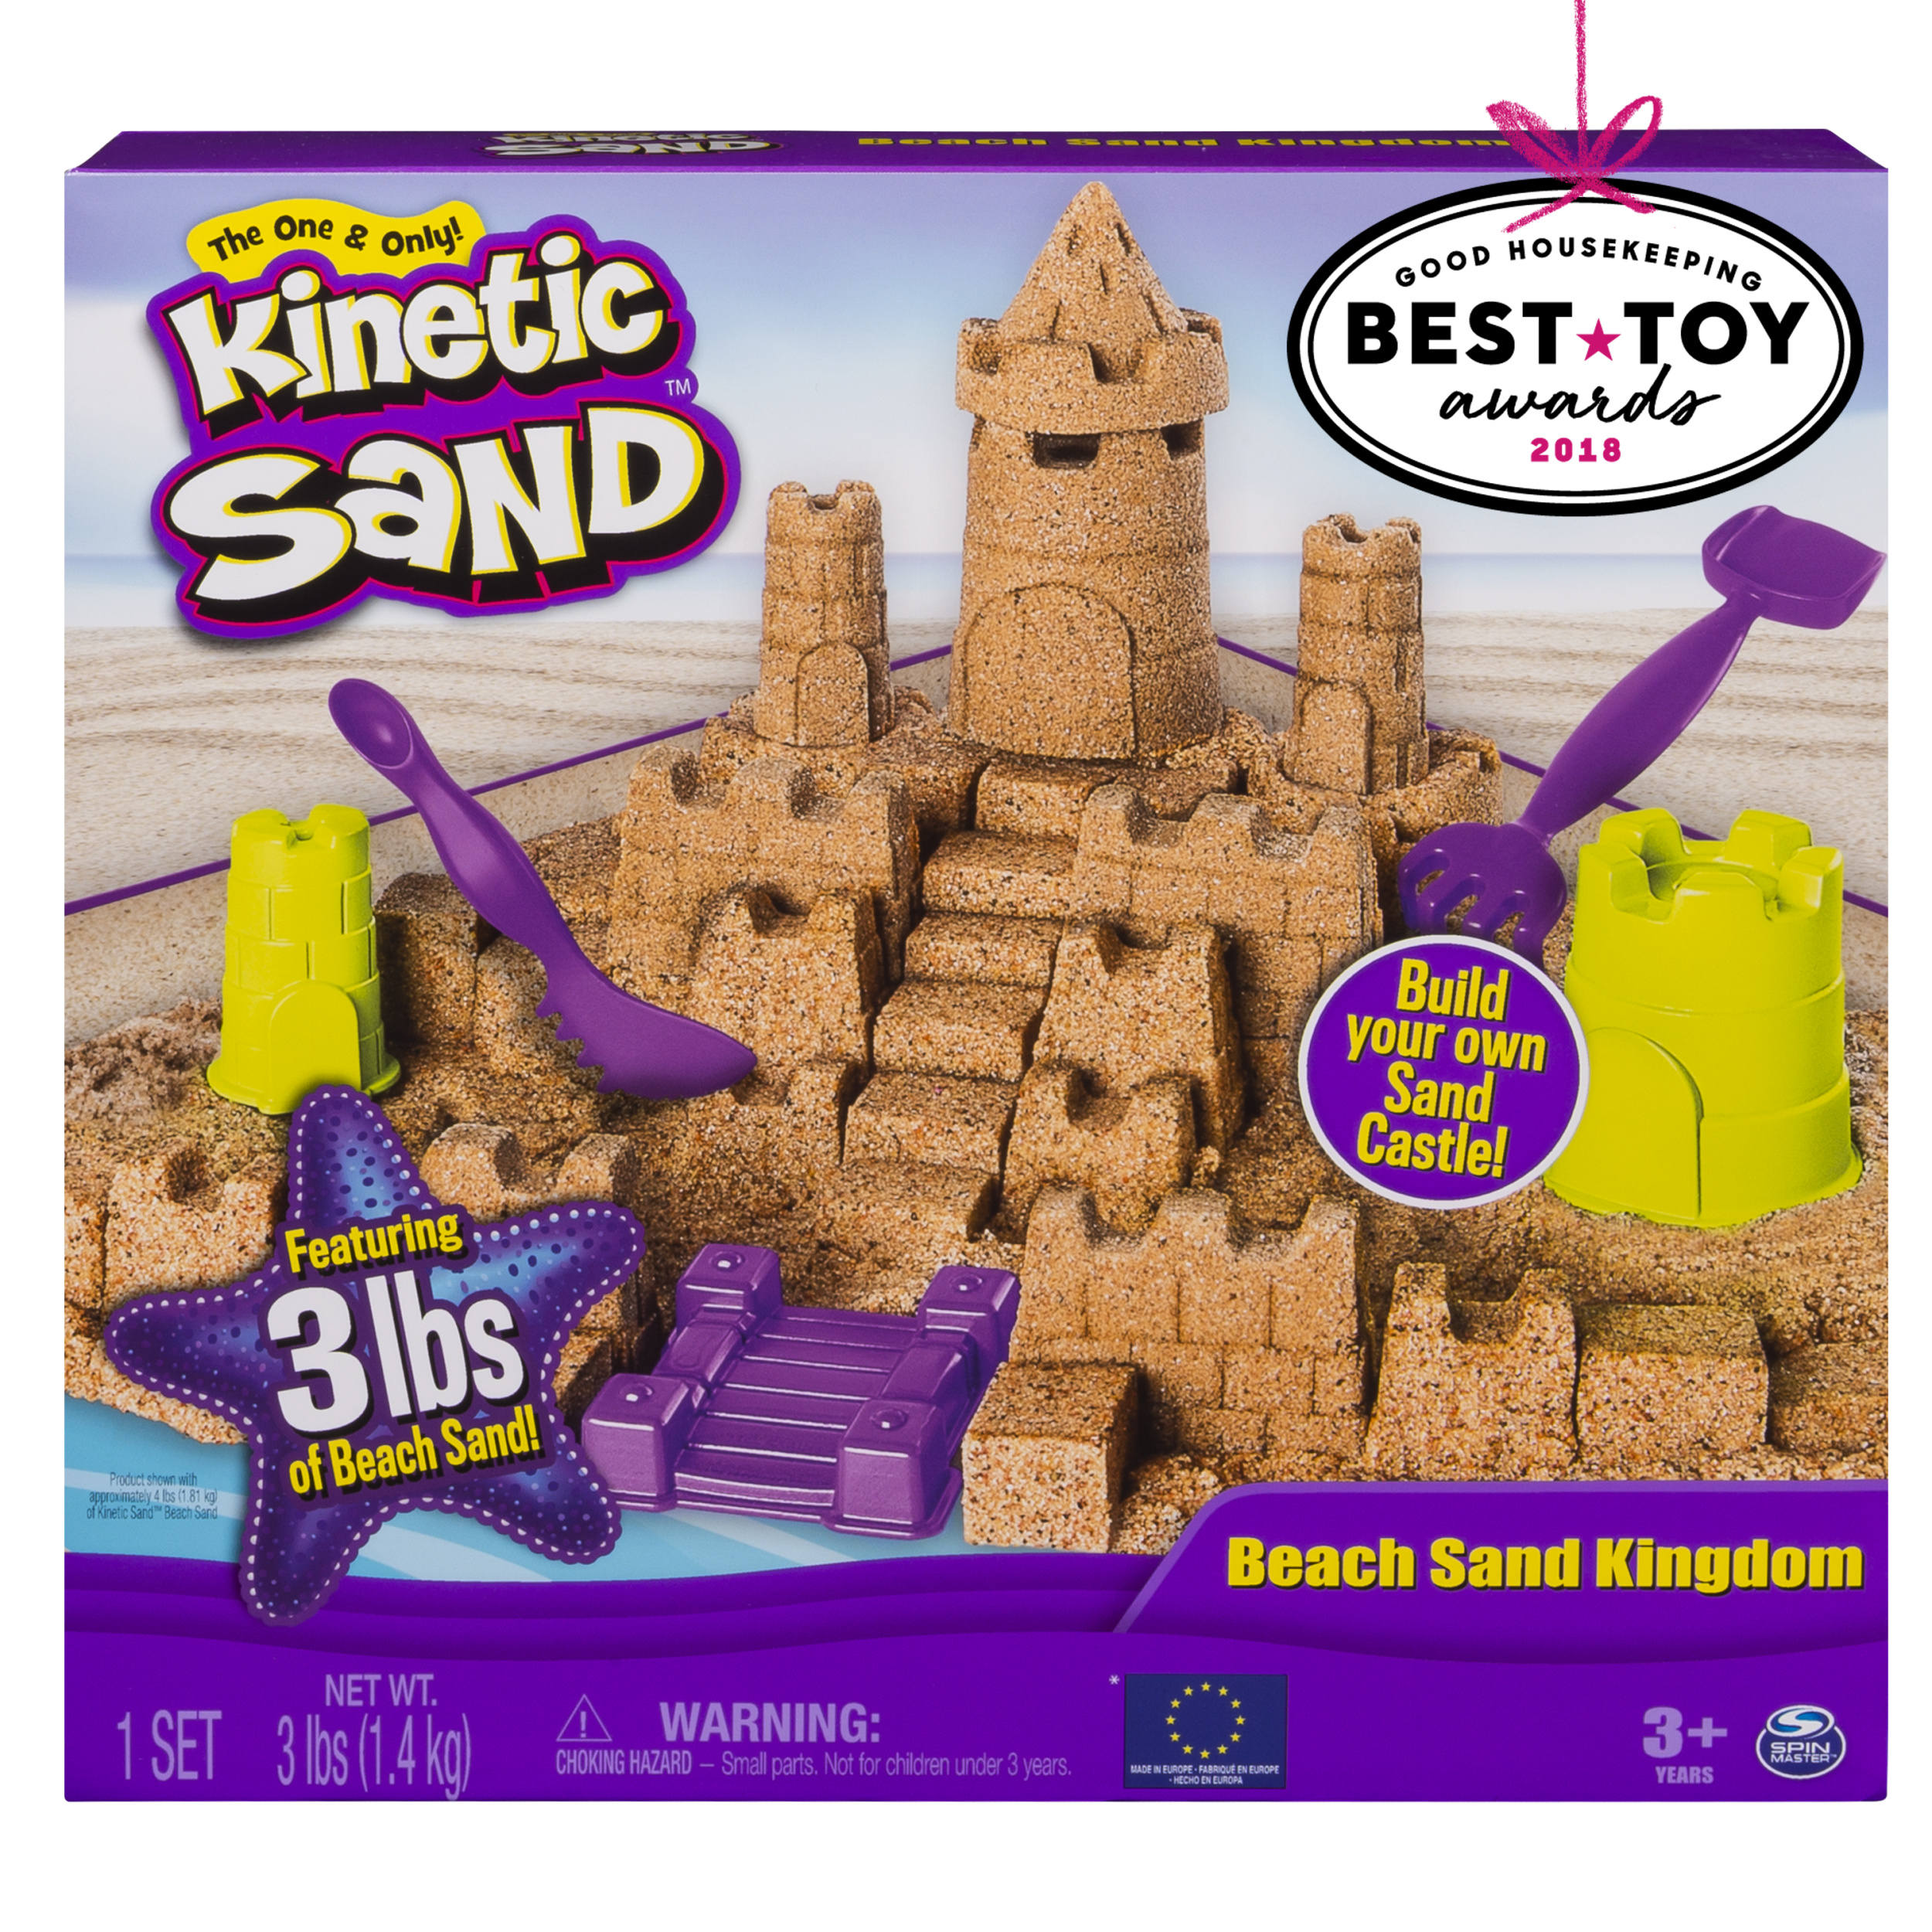 Kinetic Sand Kinetic Sand - Beach Sand Kingdom Playset with 3lbs of Beach Sand